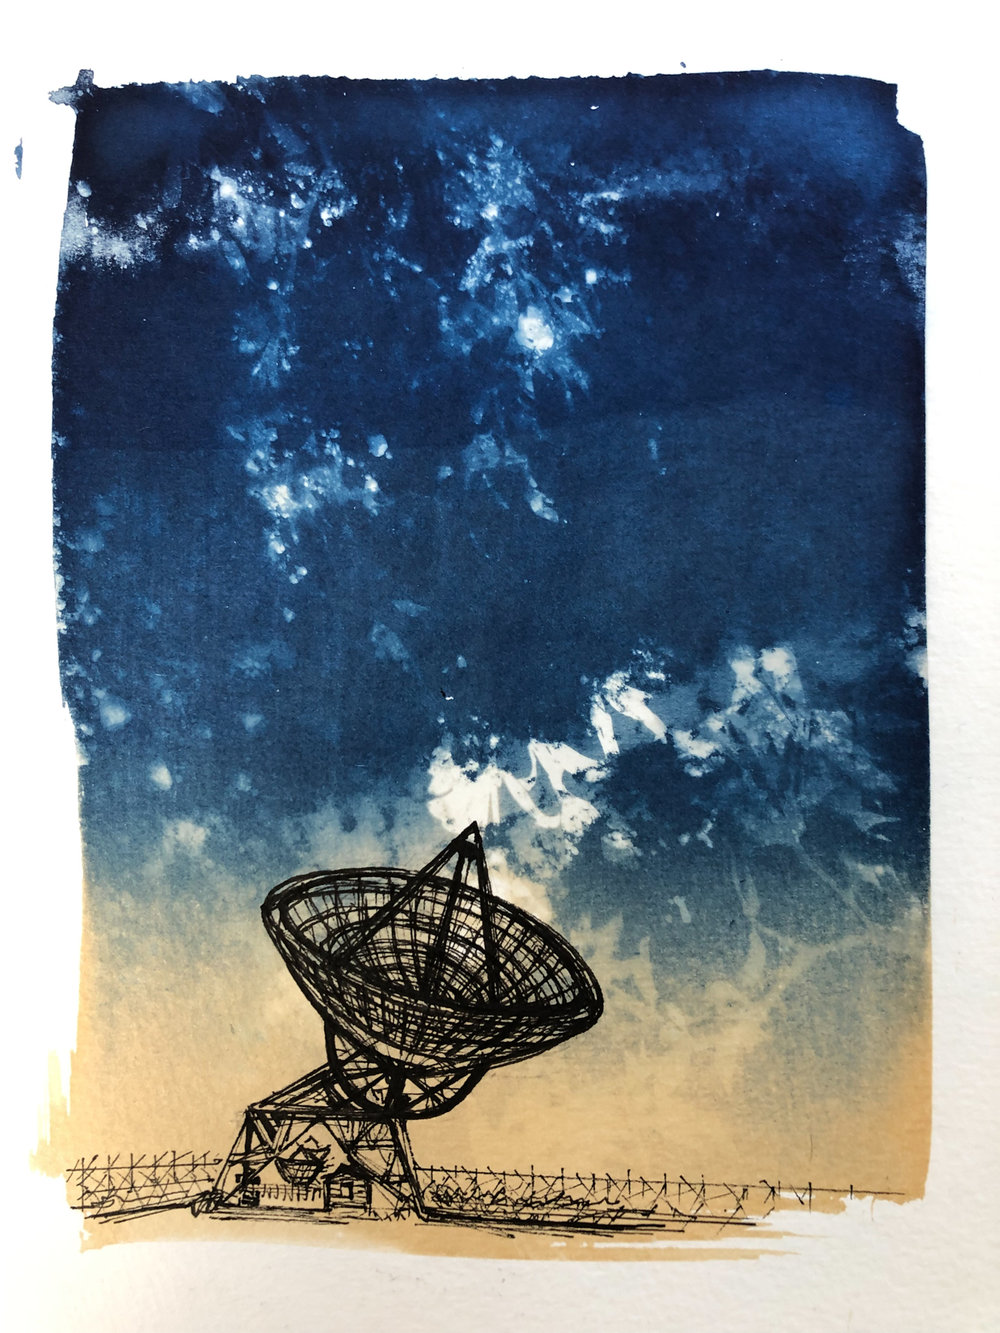 Marie Craig,  Entanglement 2 (radiotelescope),  pen and ink on toned cyanotype photograph, 6 x 8 inches.